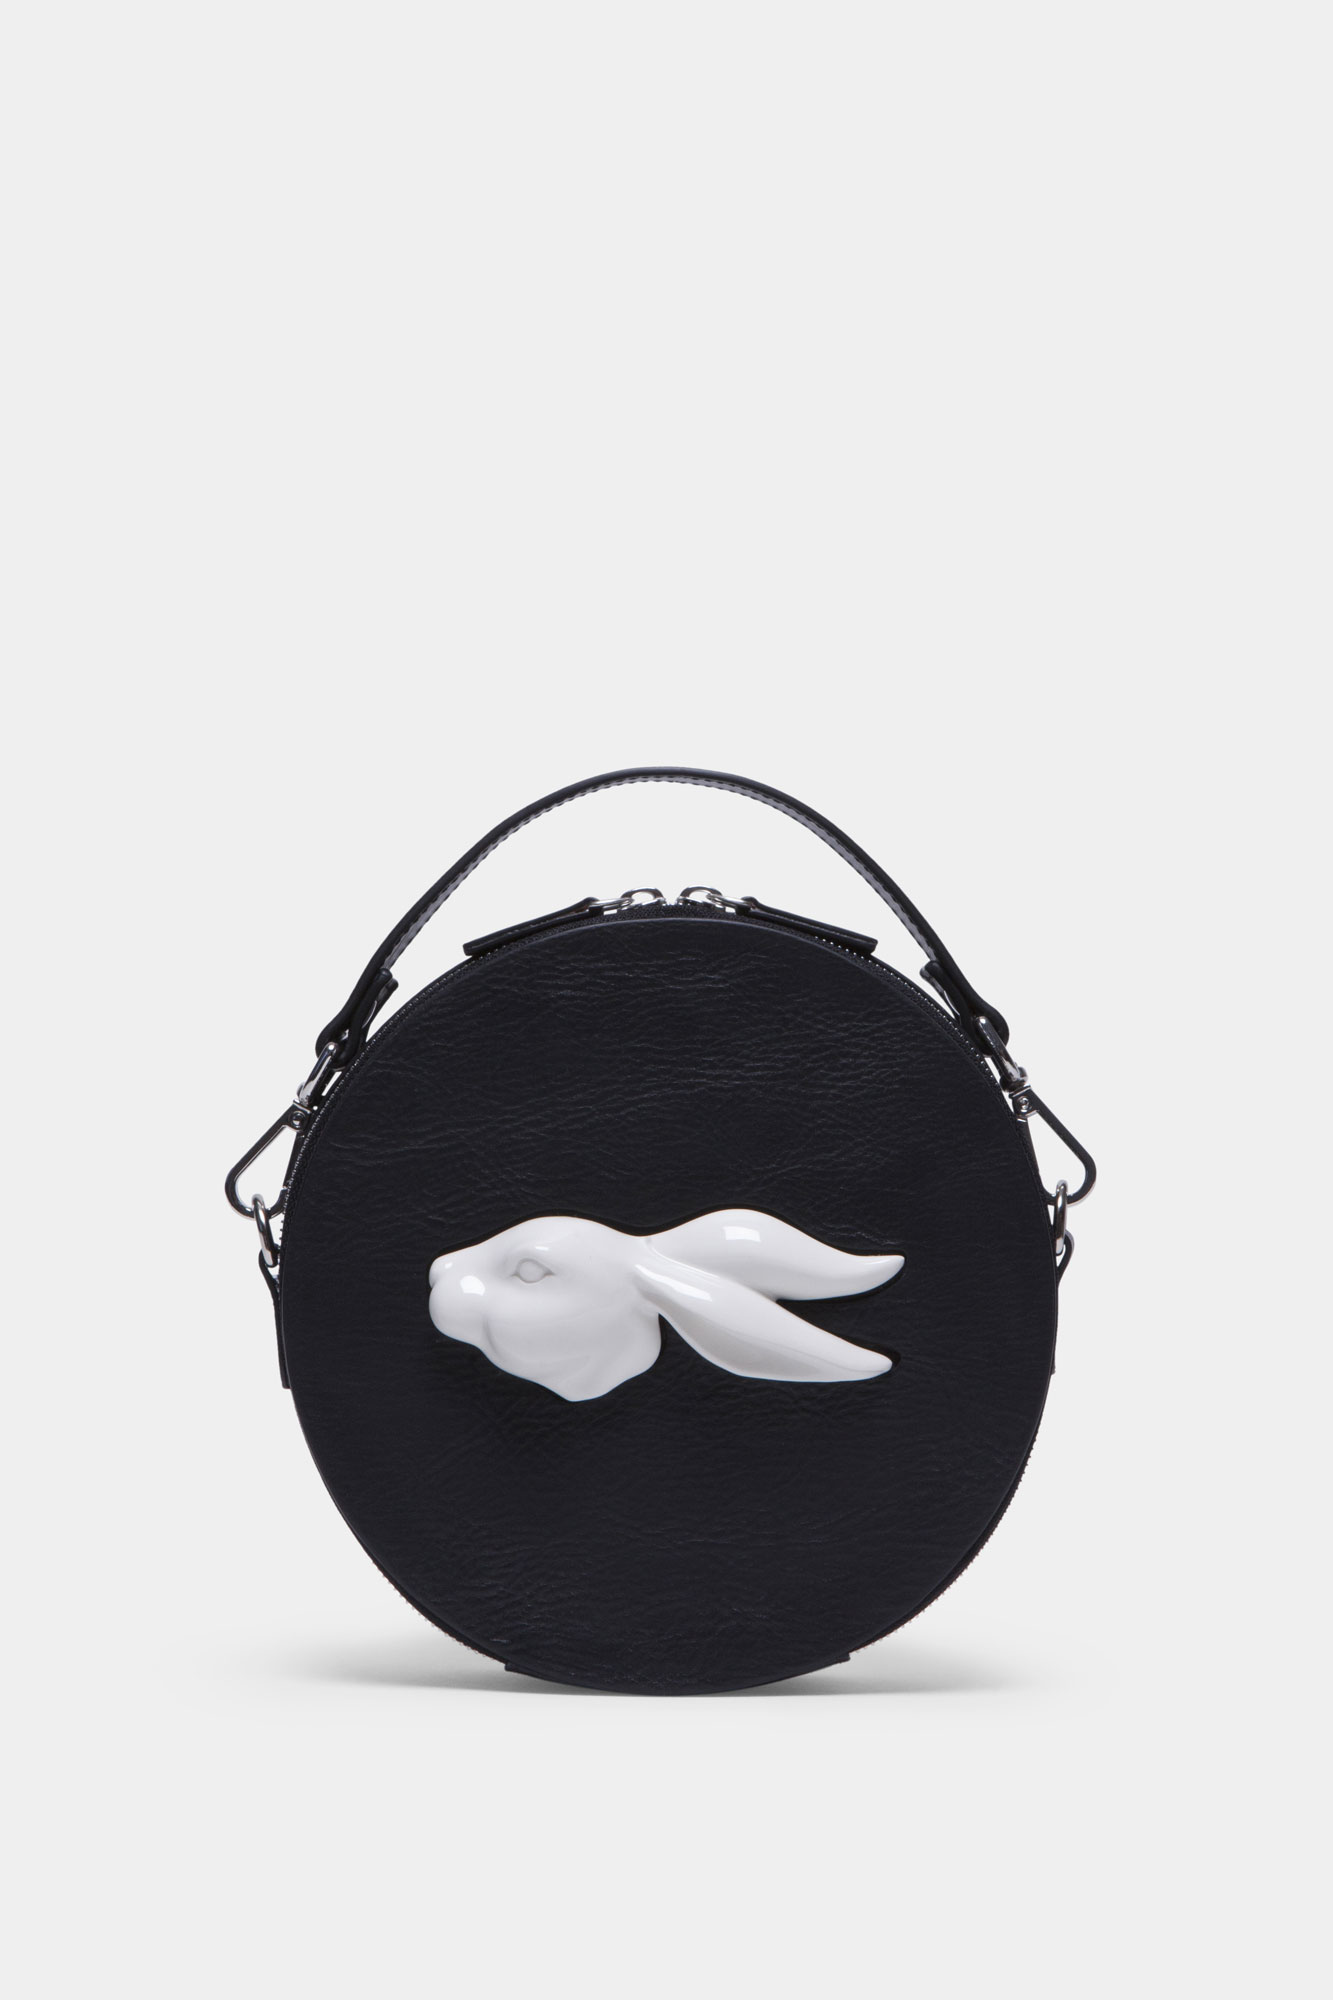 Round Rabbit Head Bag Vegetable Black